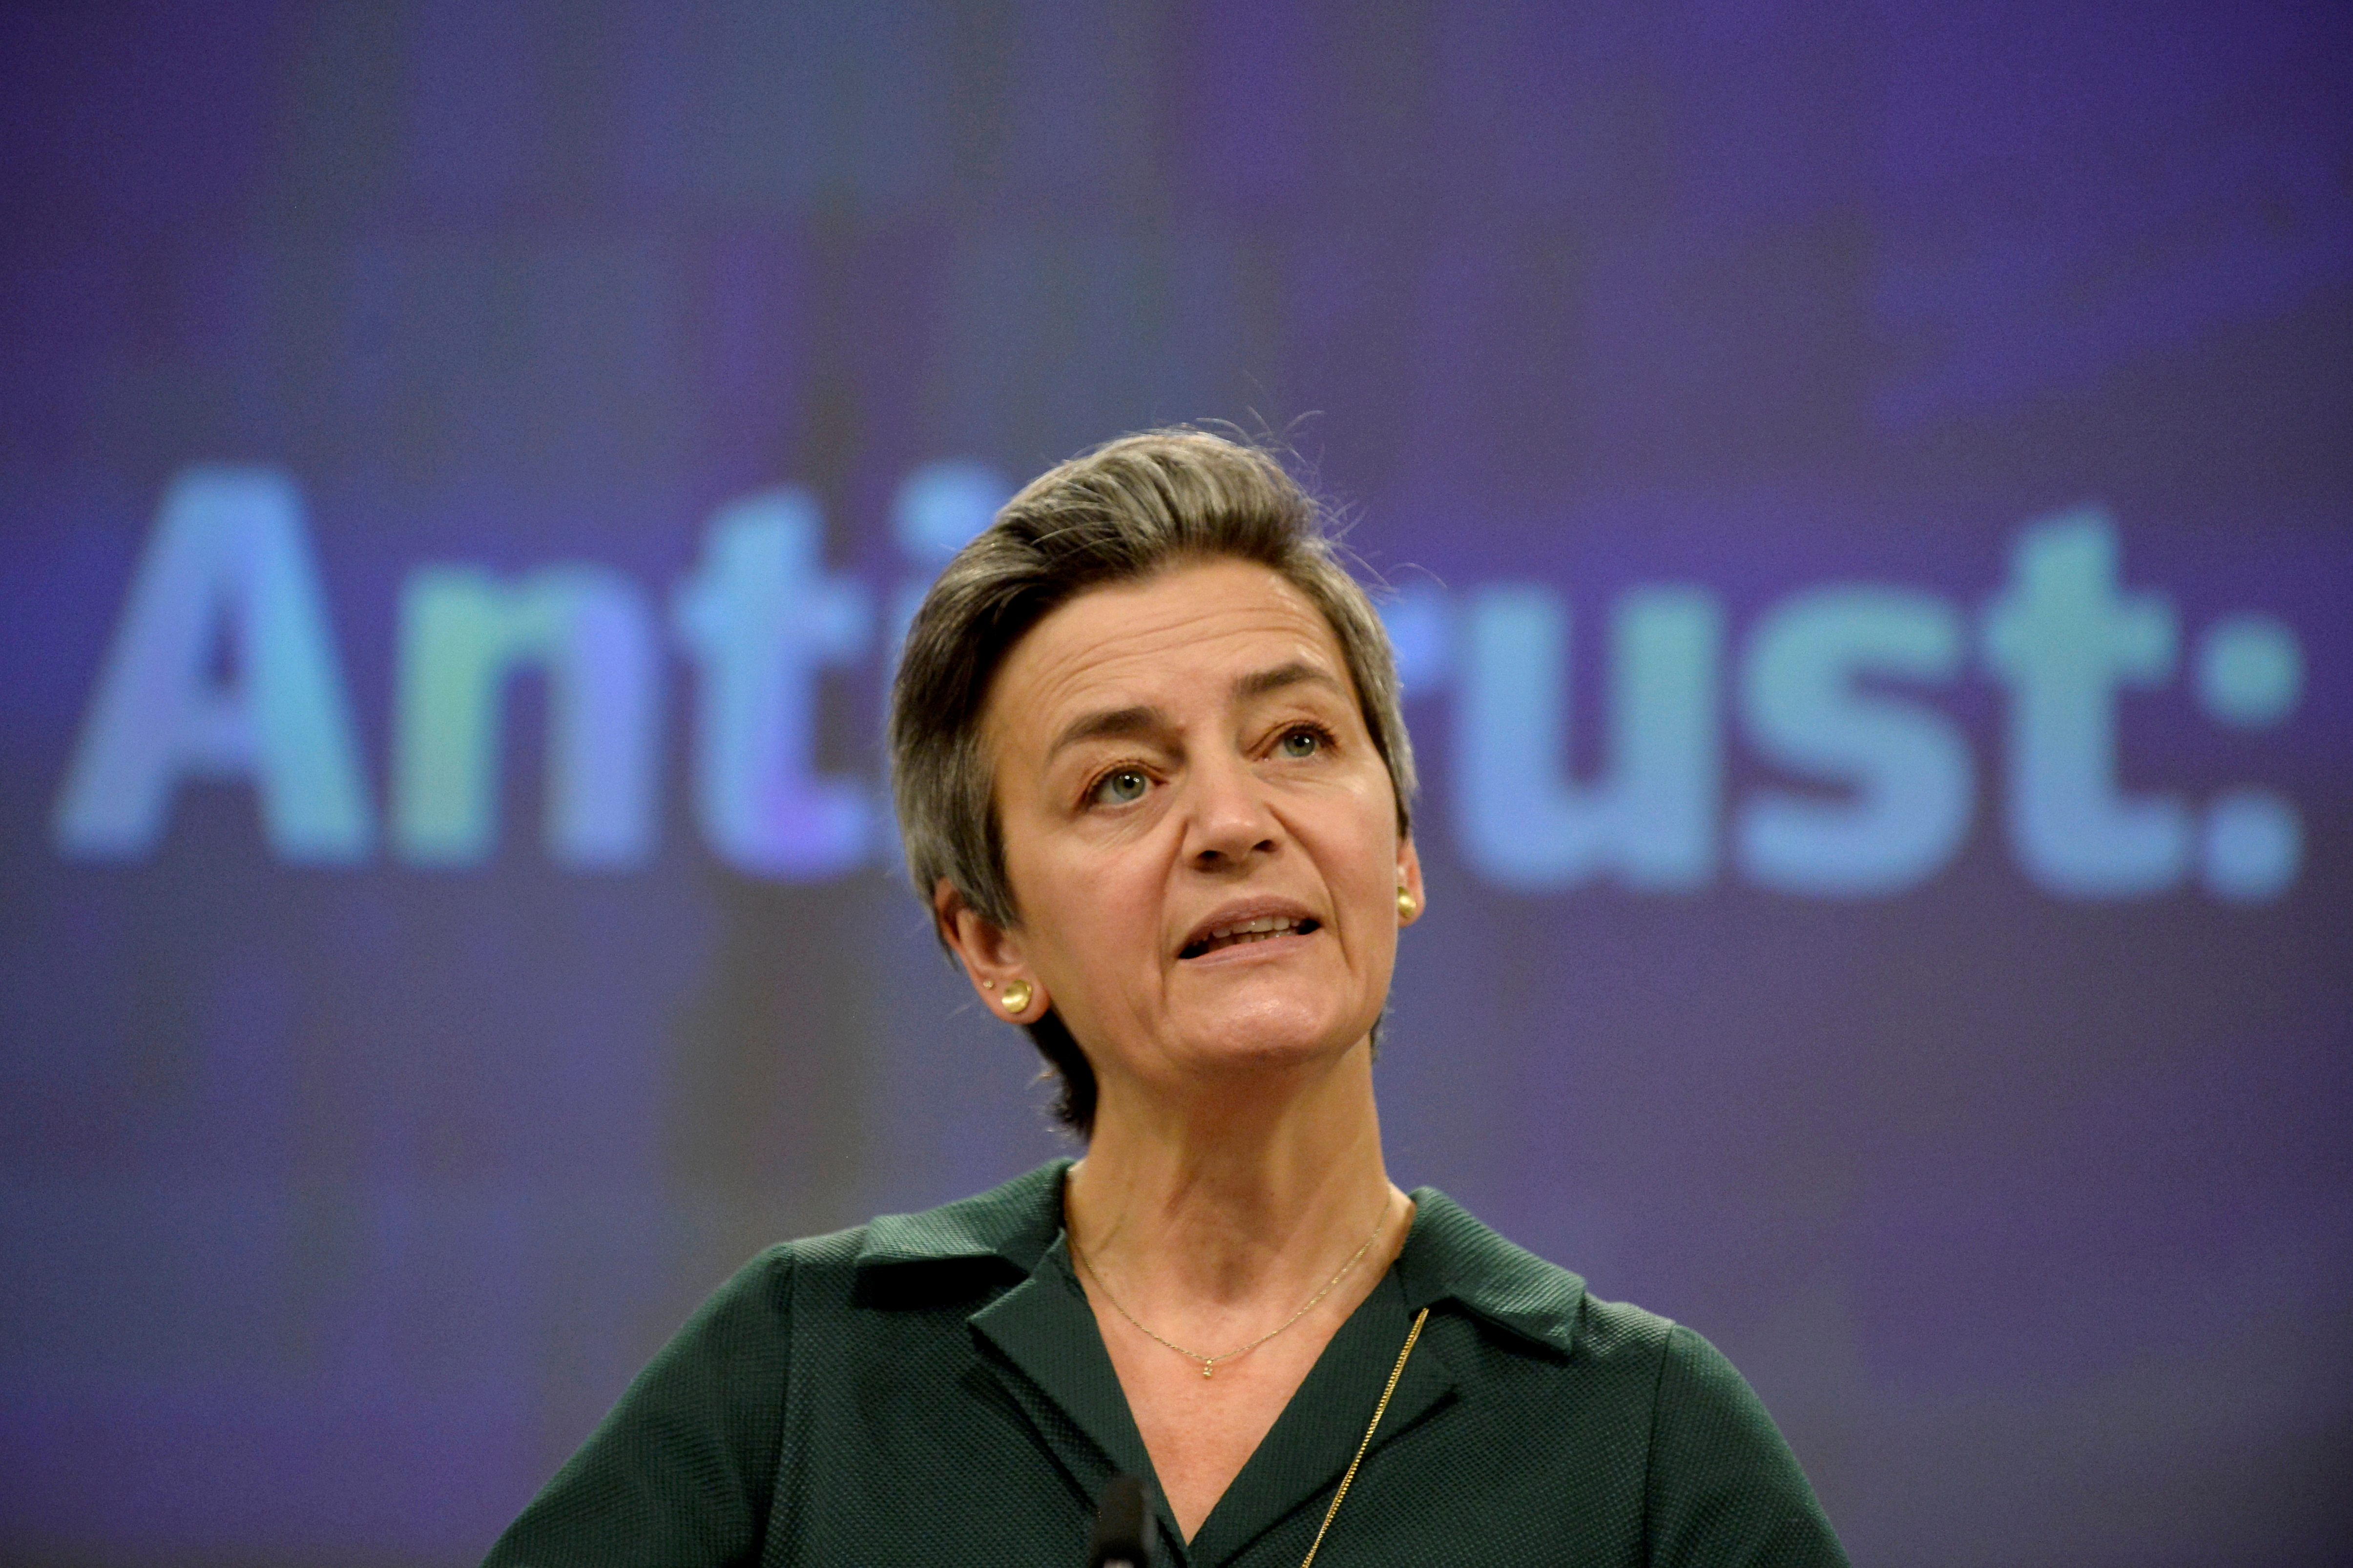 European Executive Vice- President Margrethe Vestager at the European Commission in Brussels, Belgium November 26, 2020. REUTERS/Johanna Geron/Pool/File Photo